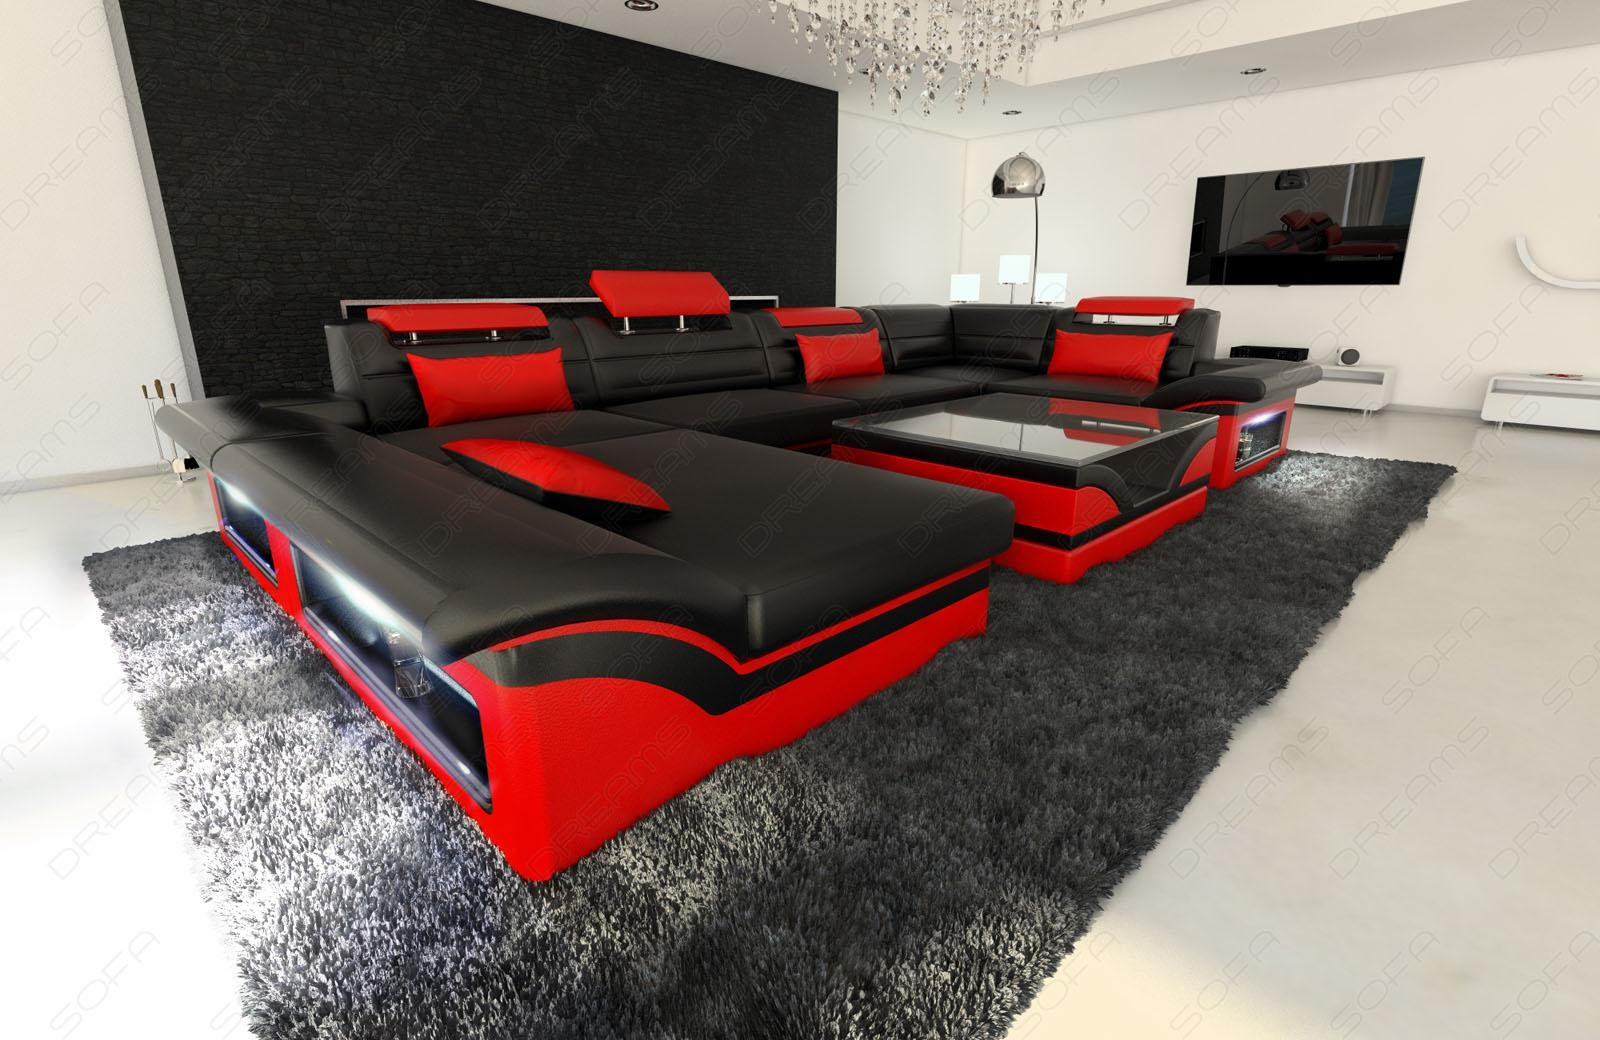 Big Leather Sofa Enzo With Led Lights Black Red | Ebay With Black And Red Sofas (Image 5 of 20)